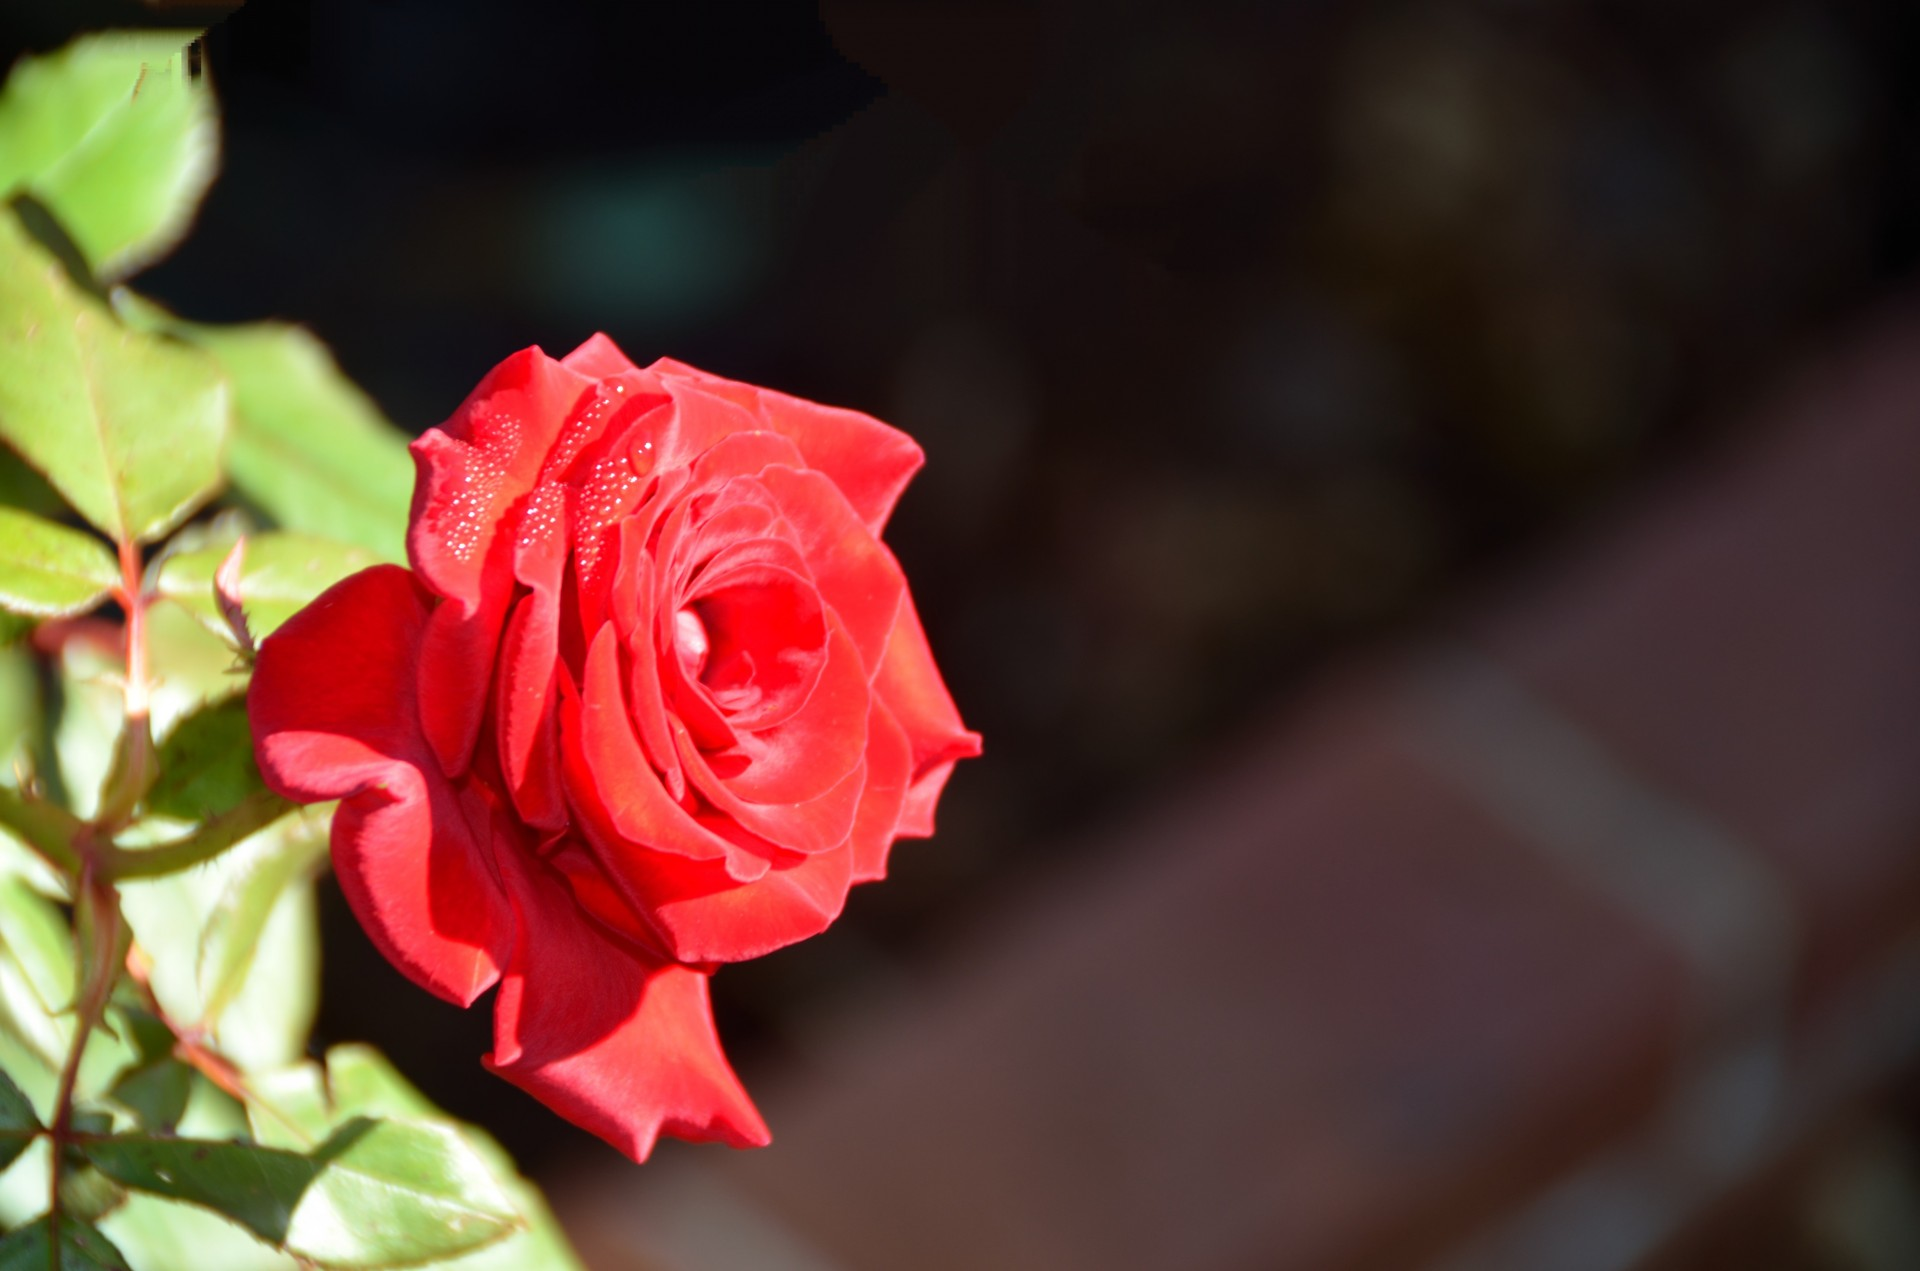 Vibrant Colored Rose Free Stock Photo - Public Domain Pictures